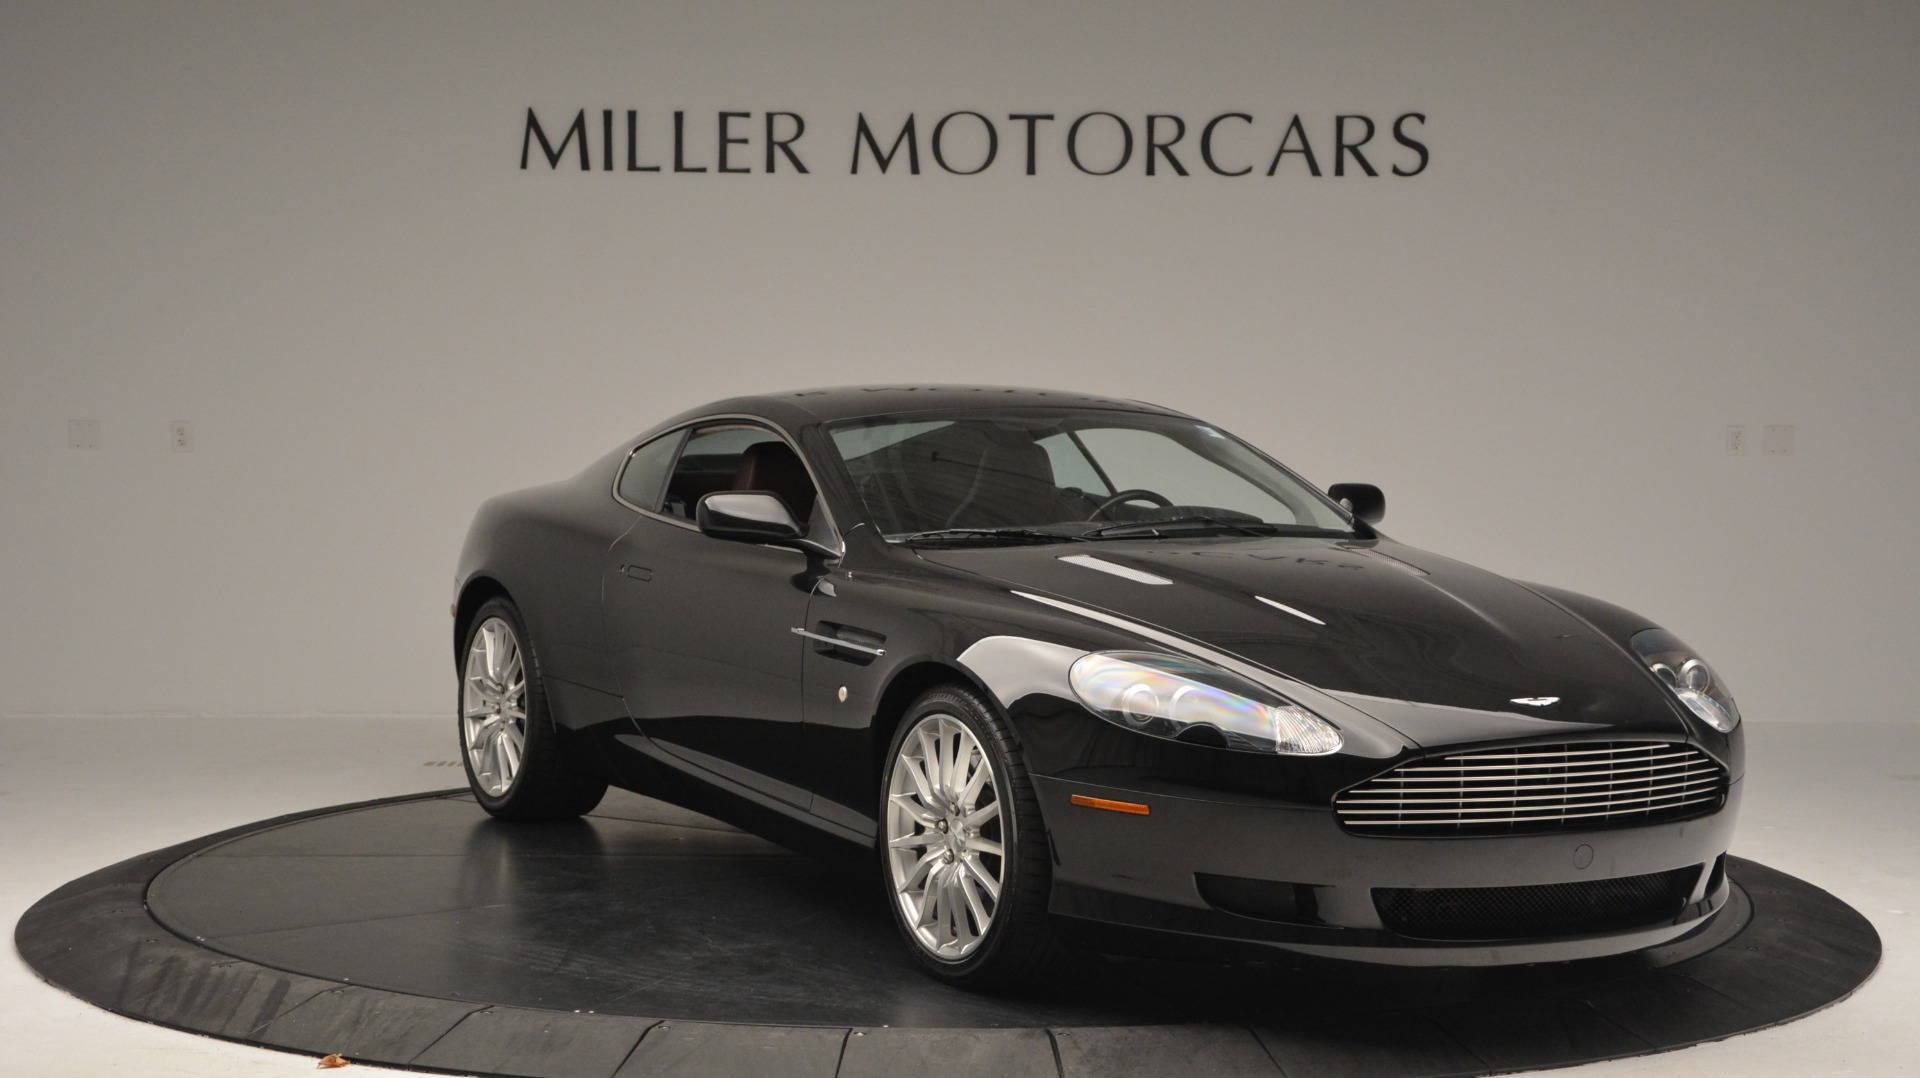 Used 2006 Aston Martin DB9 Coupe For Sale In Greenwich, CT 2832_p11